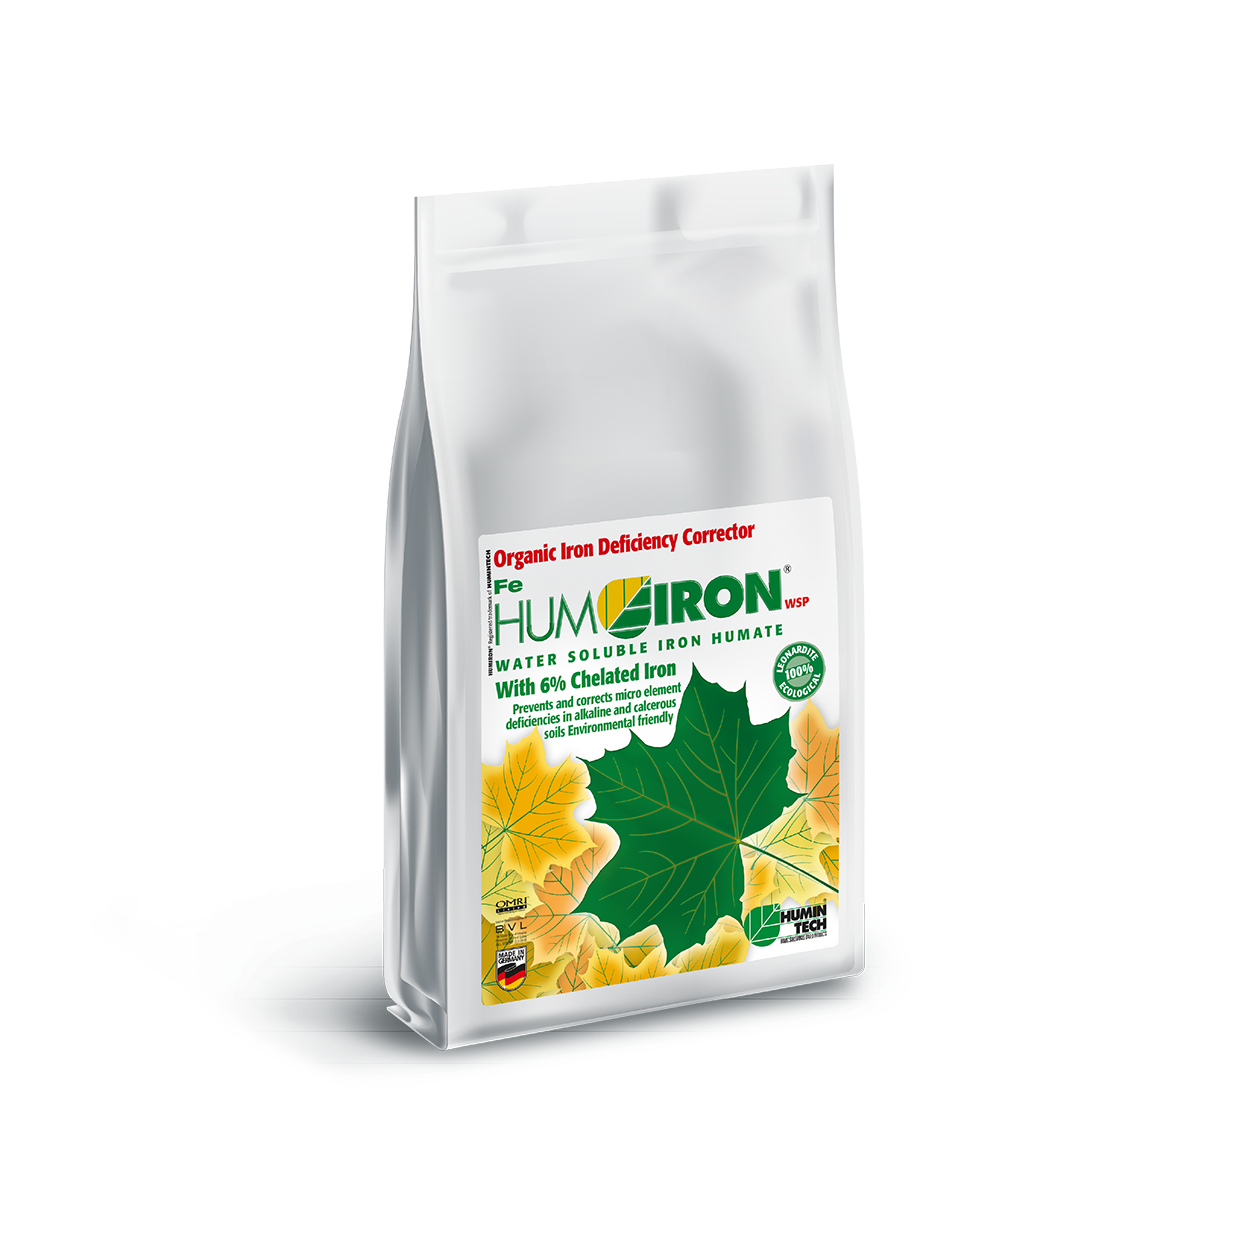 HUMIRON WSP-6 'Soil Fertilizer Pesticide'